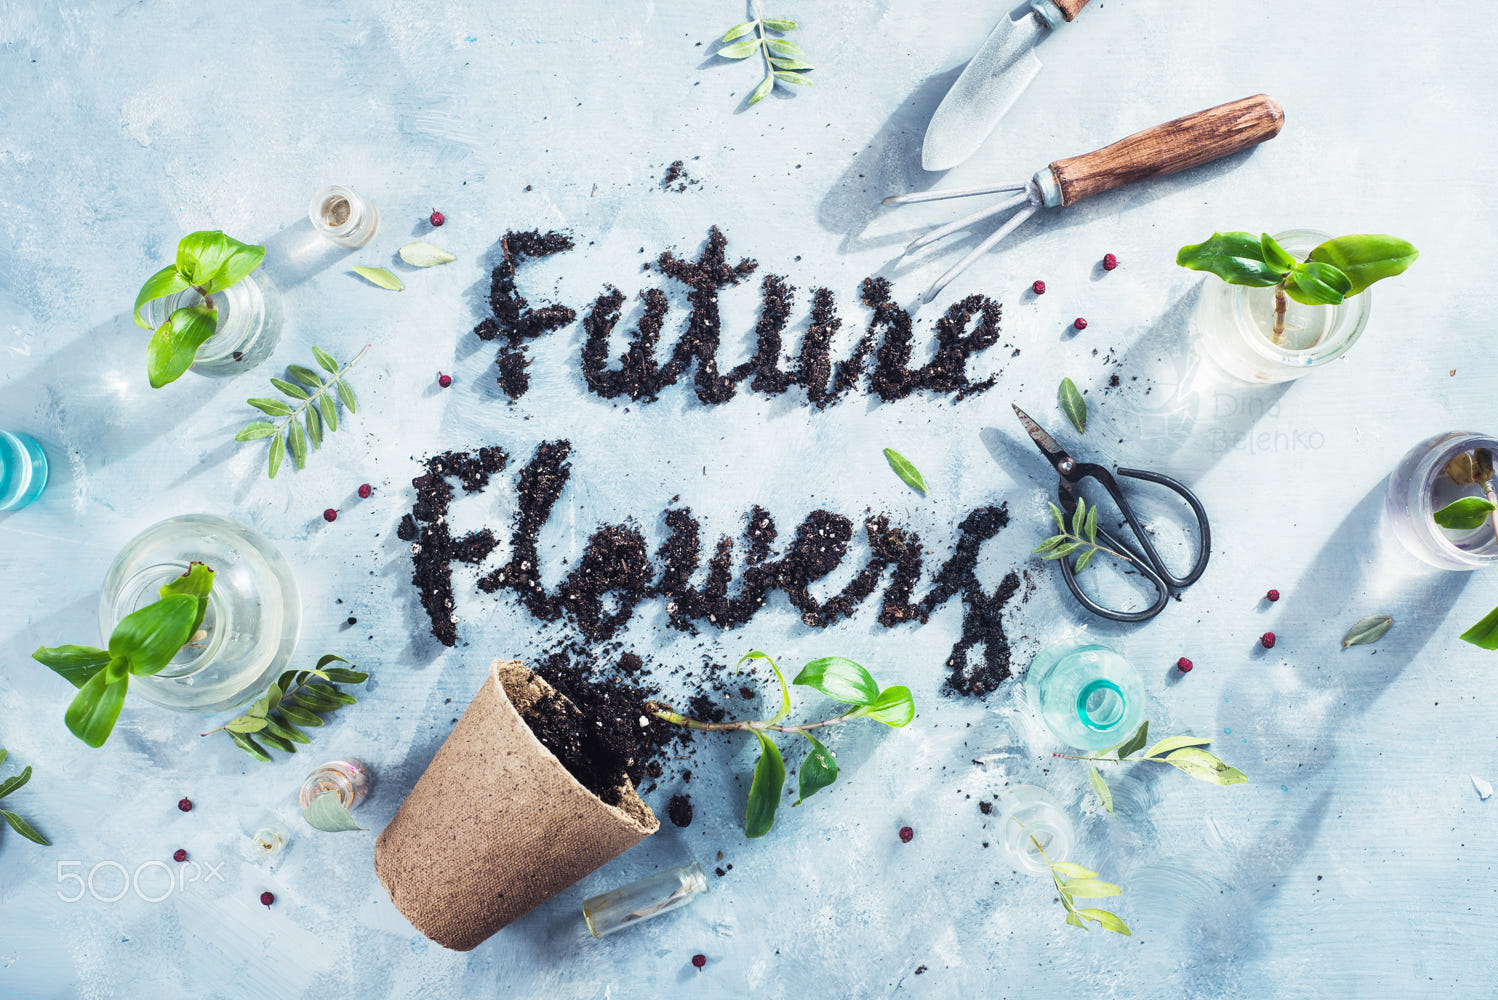 food art advertising idea photo manipulations future flowers